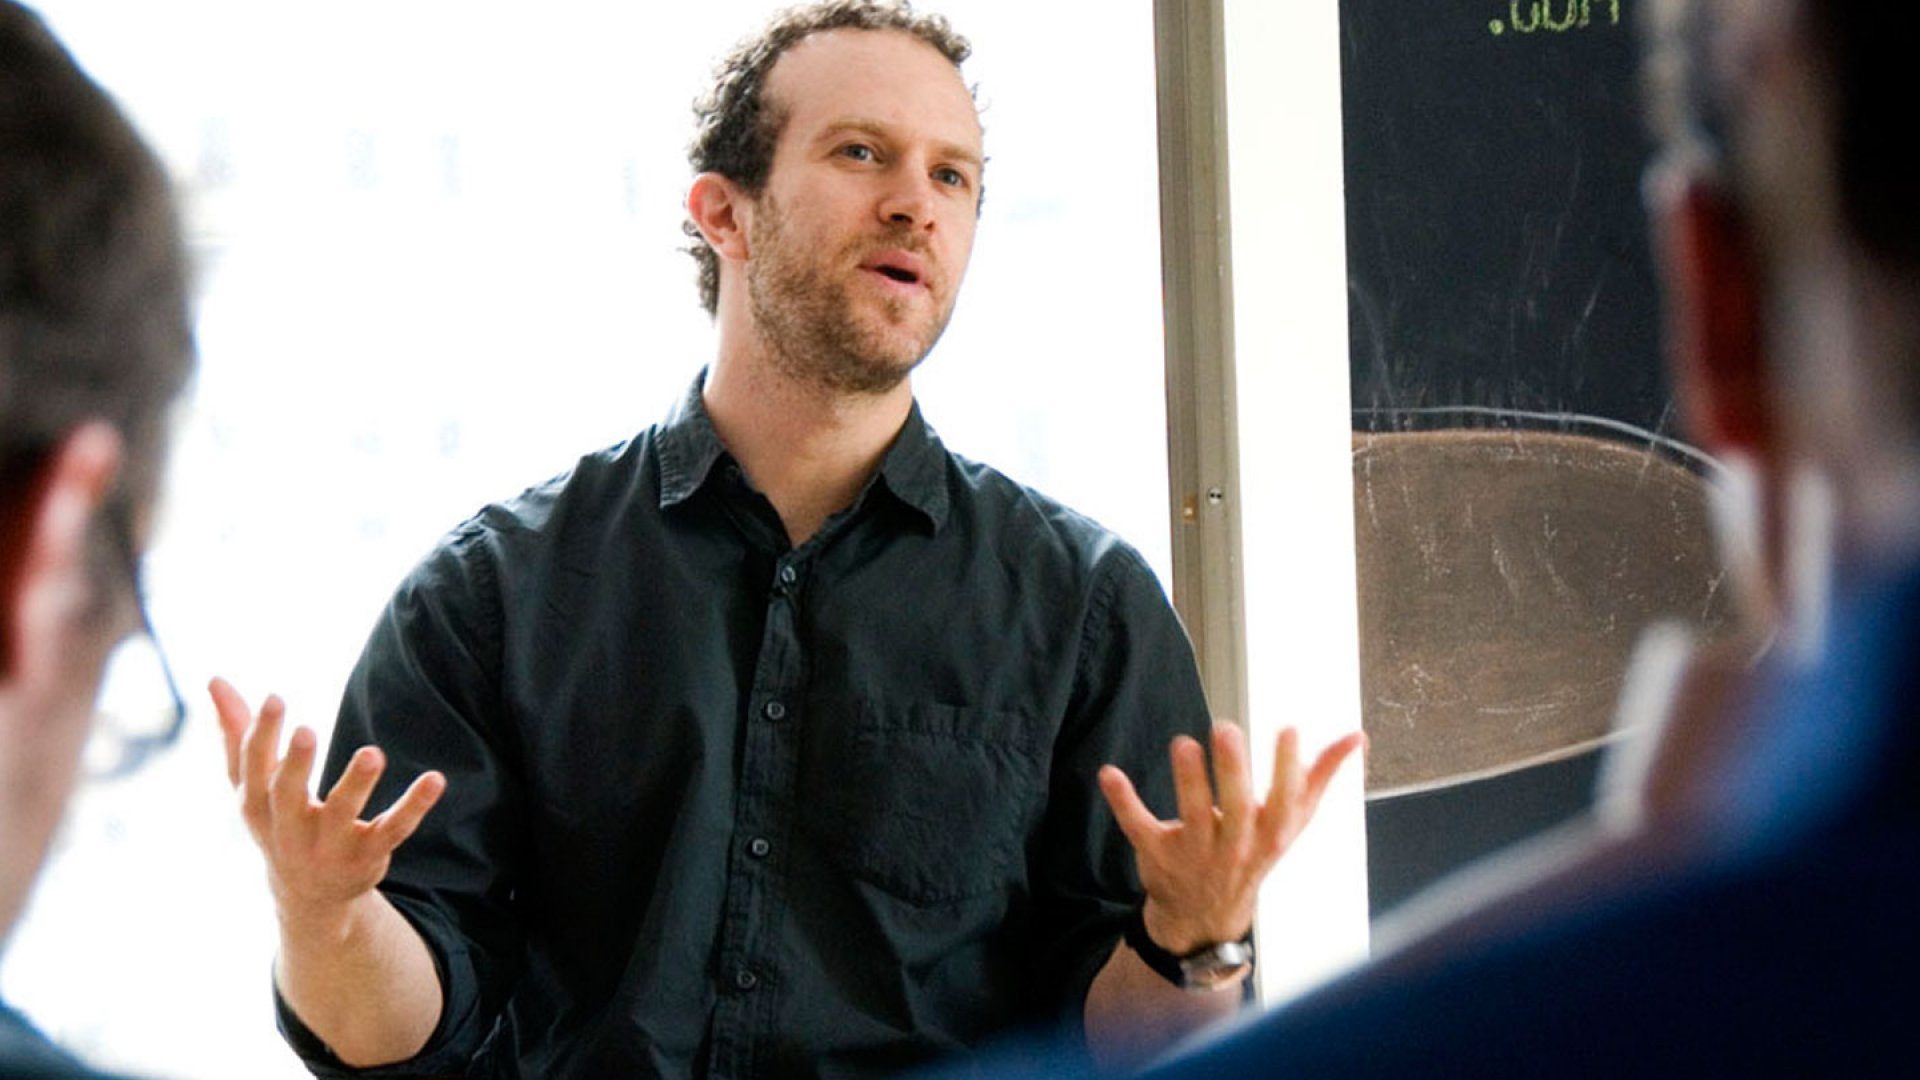 37signals co-founder and president Jason Fried